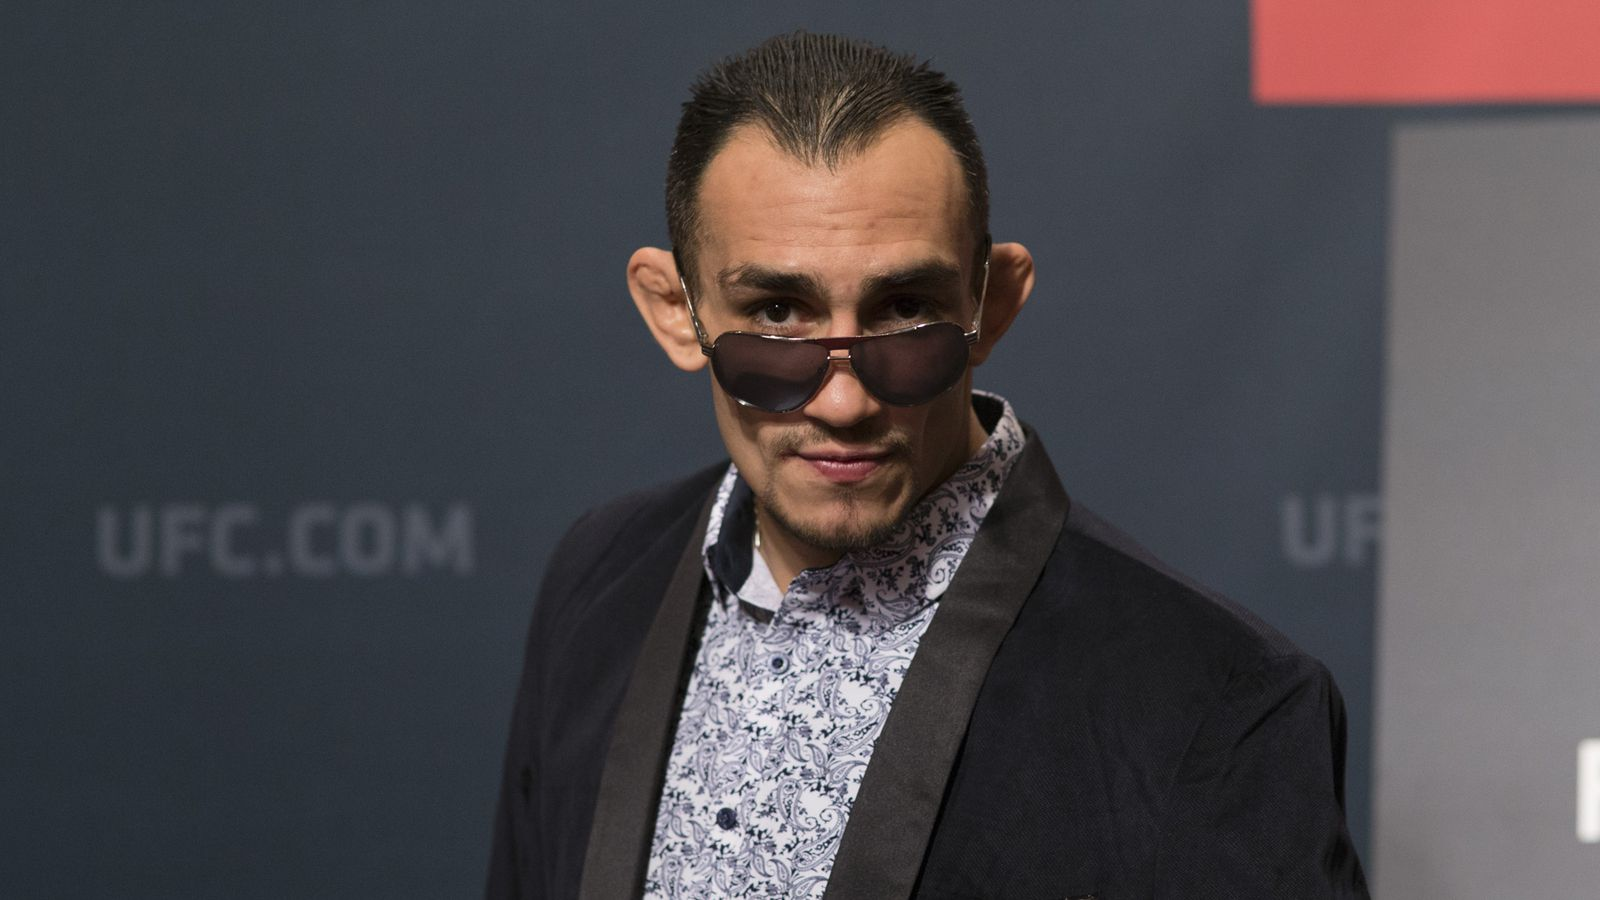 Morning Report Tony Ferguson To Nate Diaz Fight Or